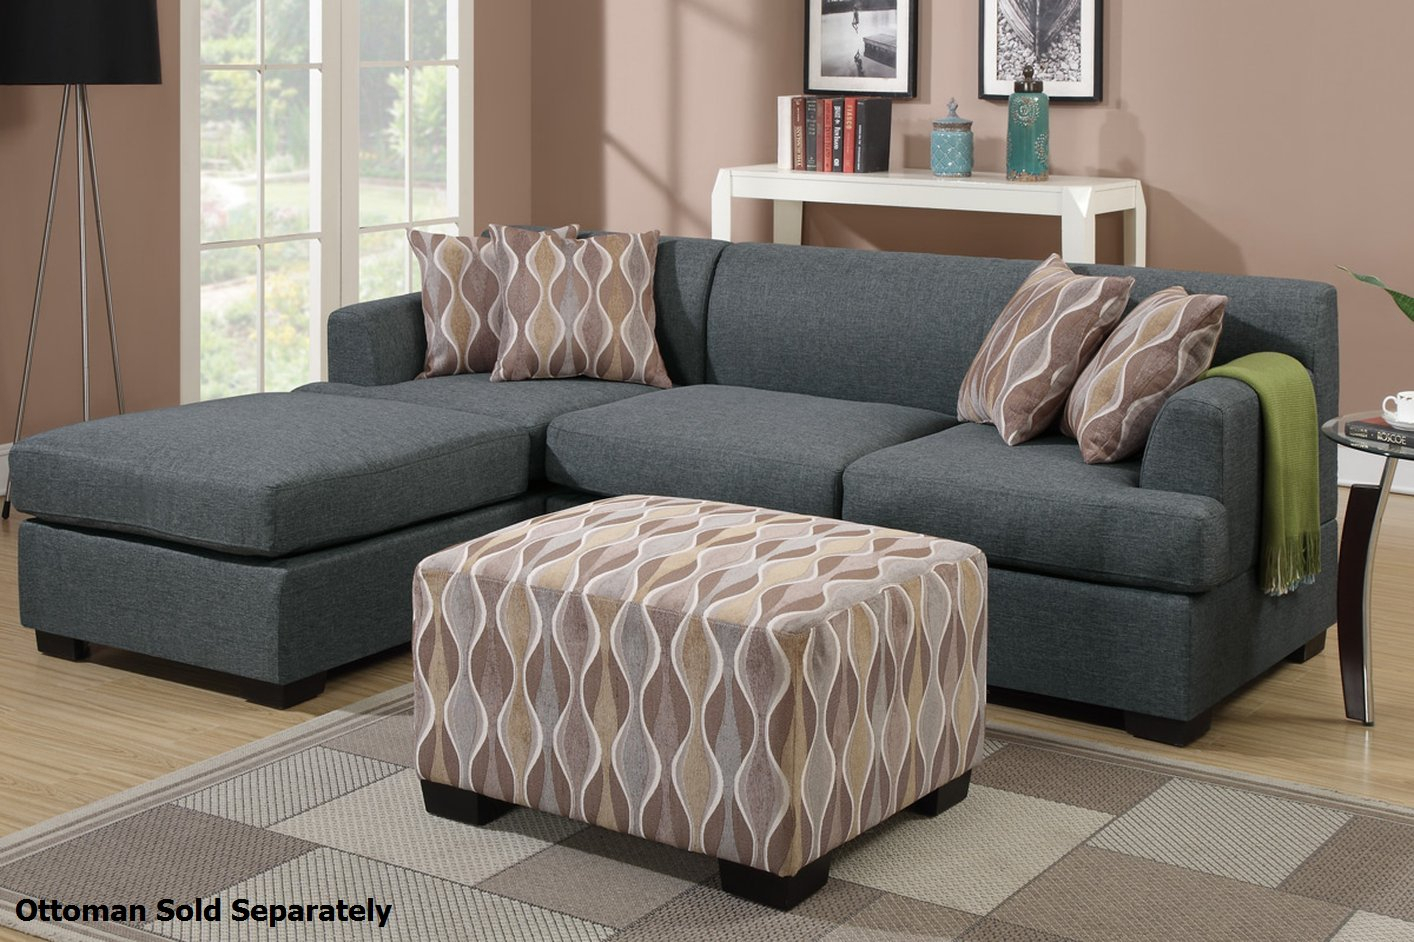 Grey Fabric Sectional Sofa – Steal A Sofa Furniture Outlet With Regard To Noa Sectional Sofas With Ottoman Gray (View 6 of 15)